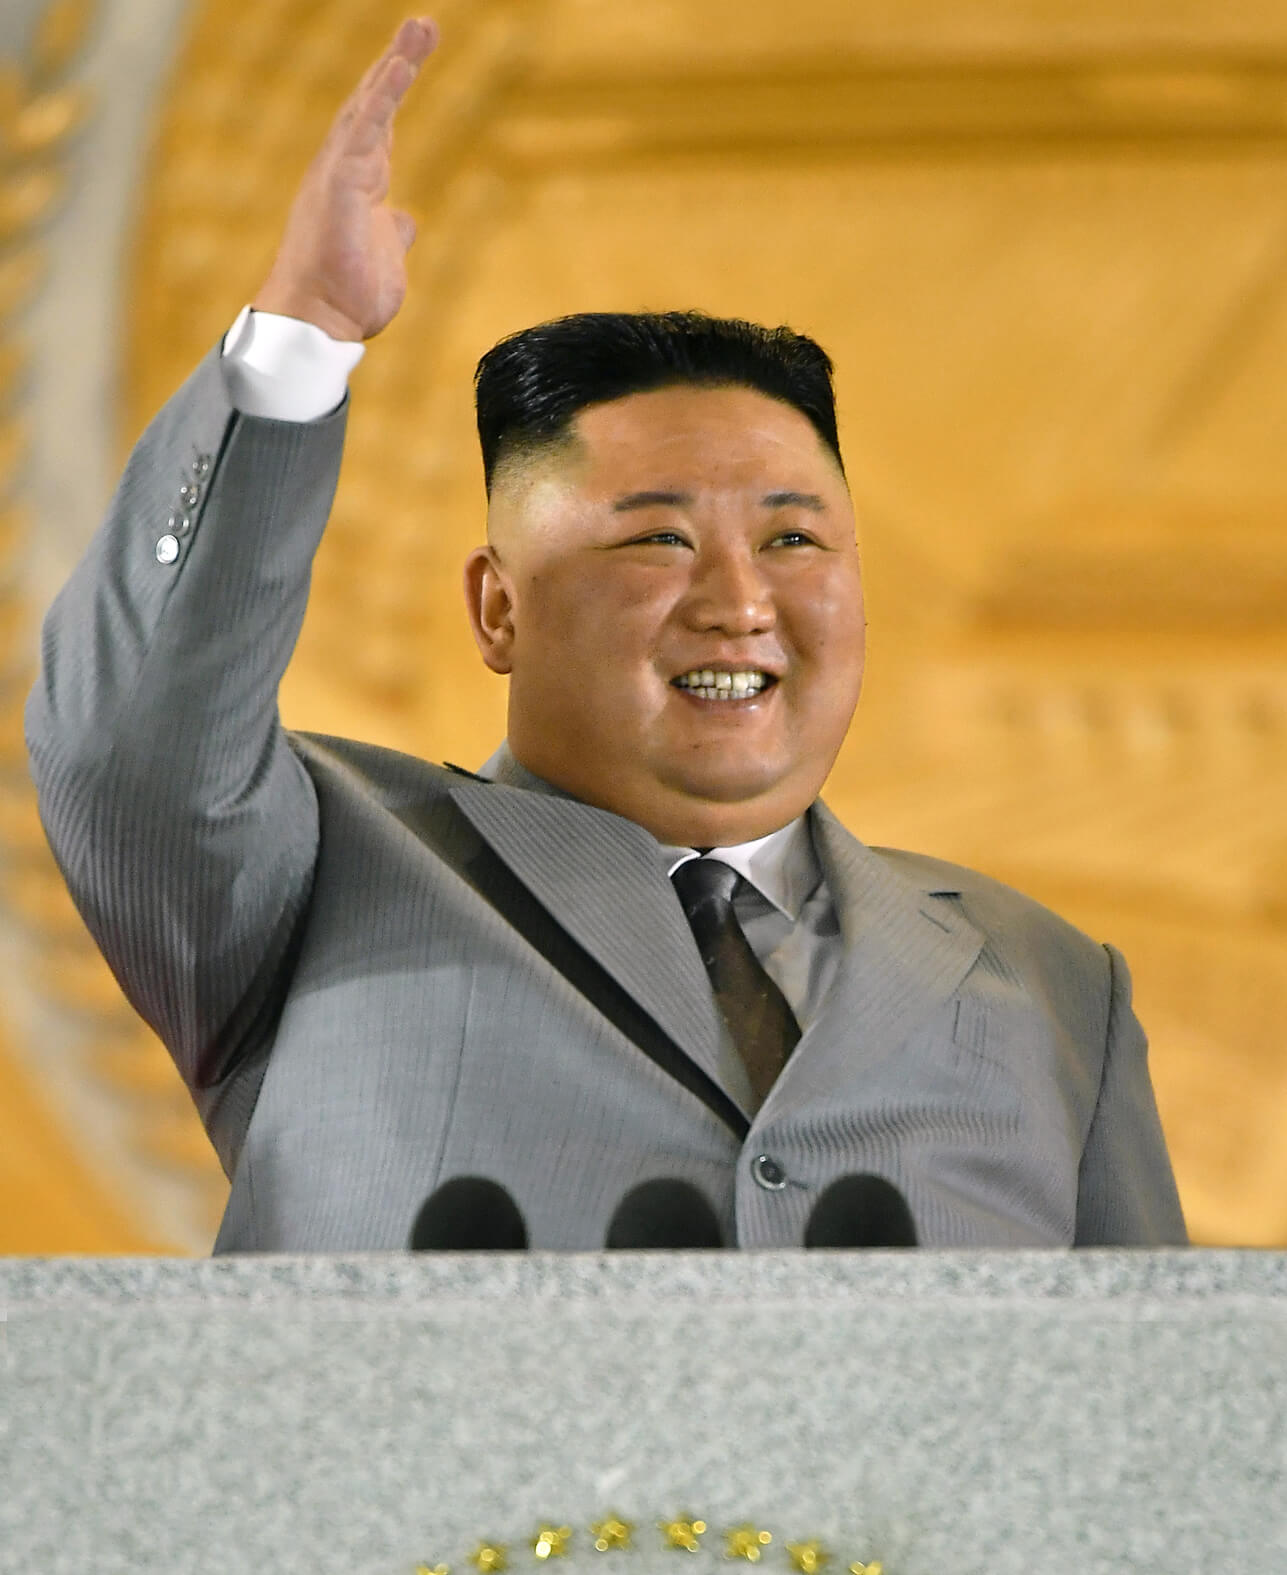 Kim Jong Un, chairman of the Workers' Party of Korea, chairman of the State Affairs Commission of the Democratic People's Republic of Korea and supreme commander of the armed forces of the DPRK